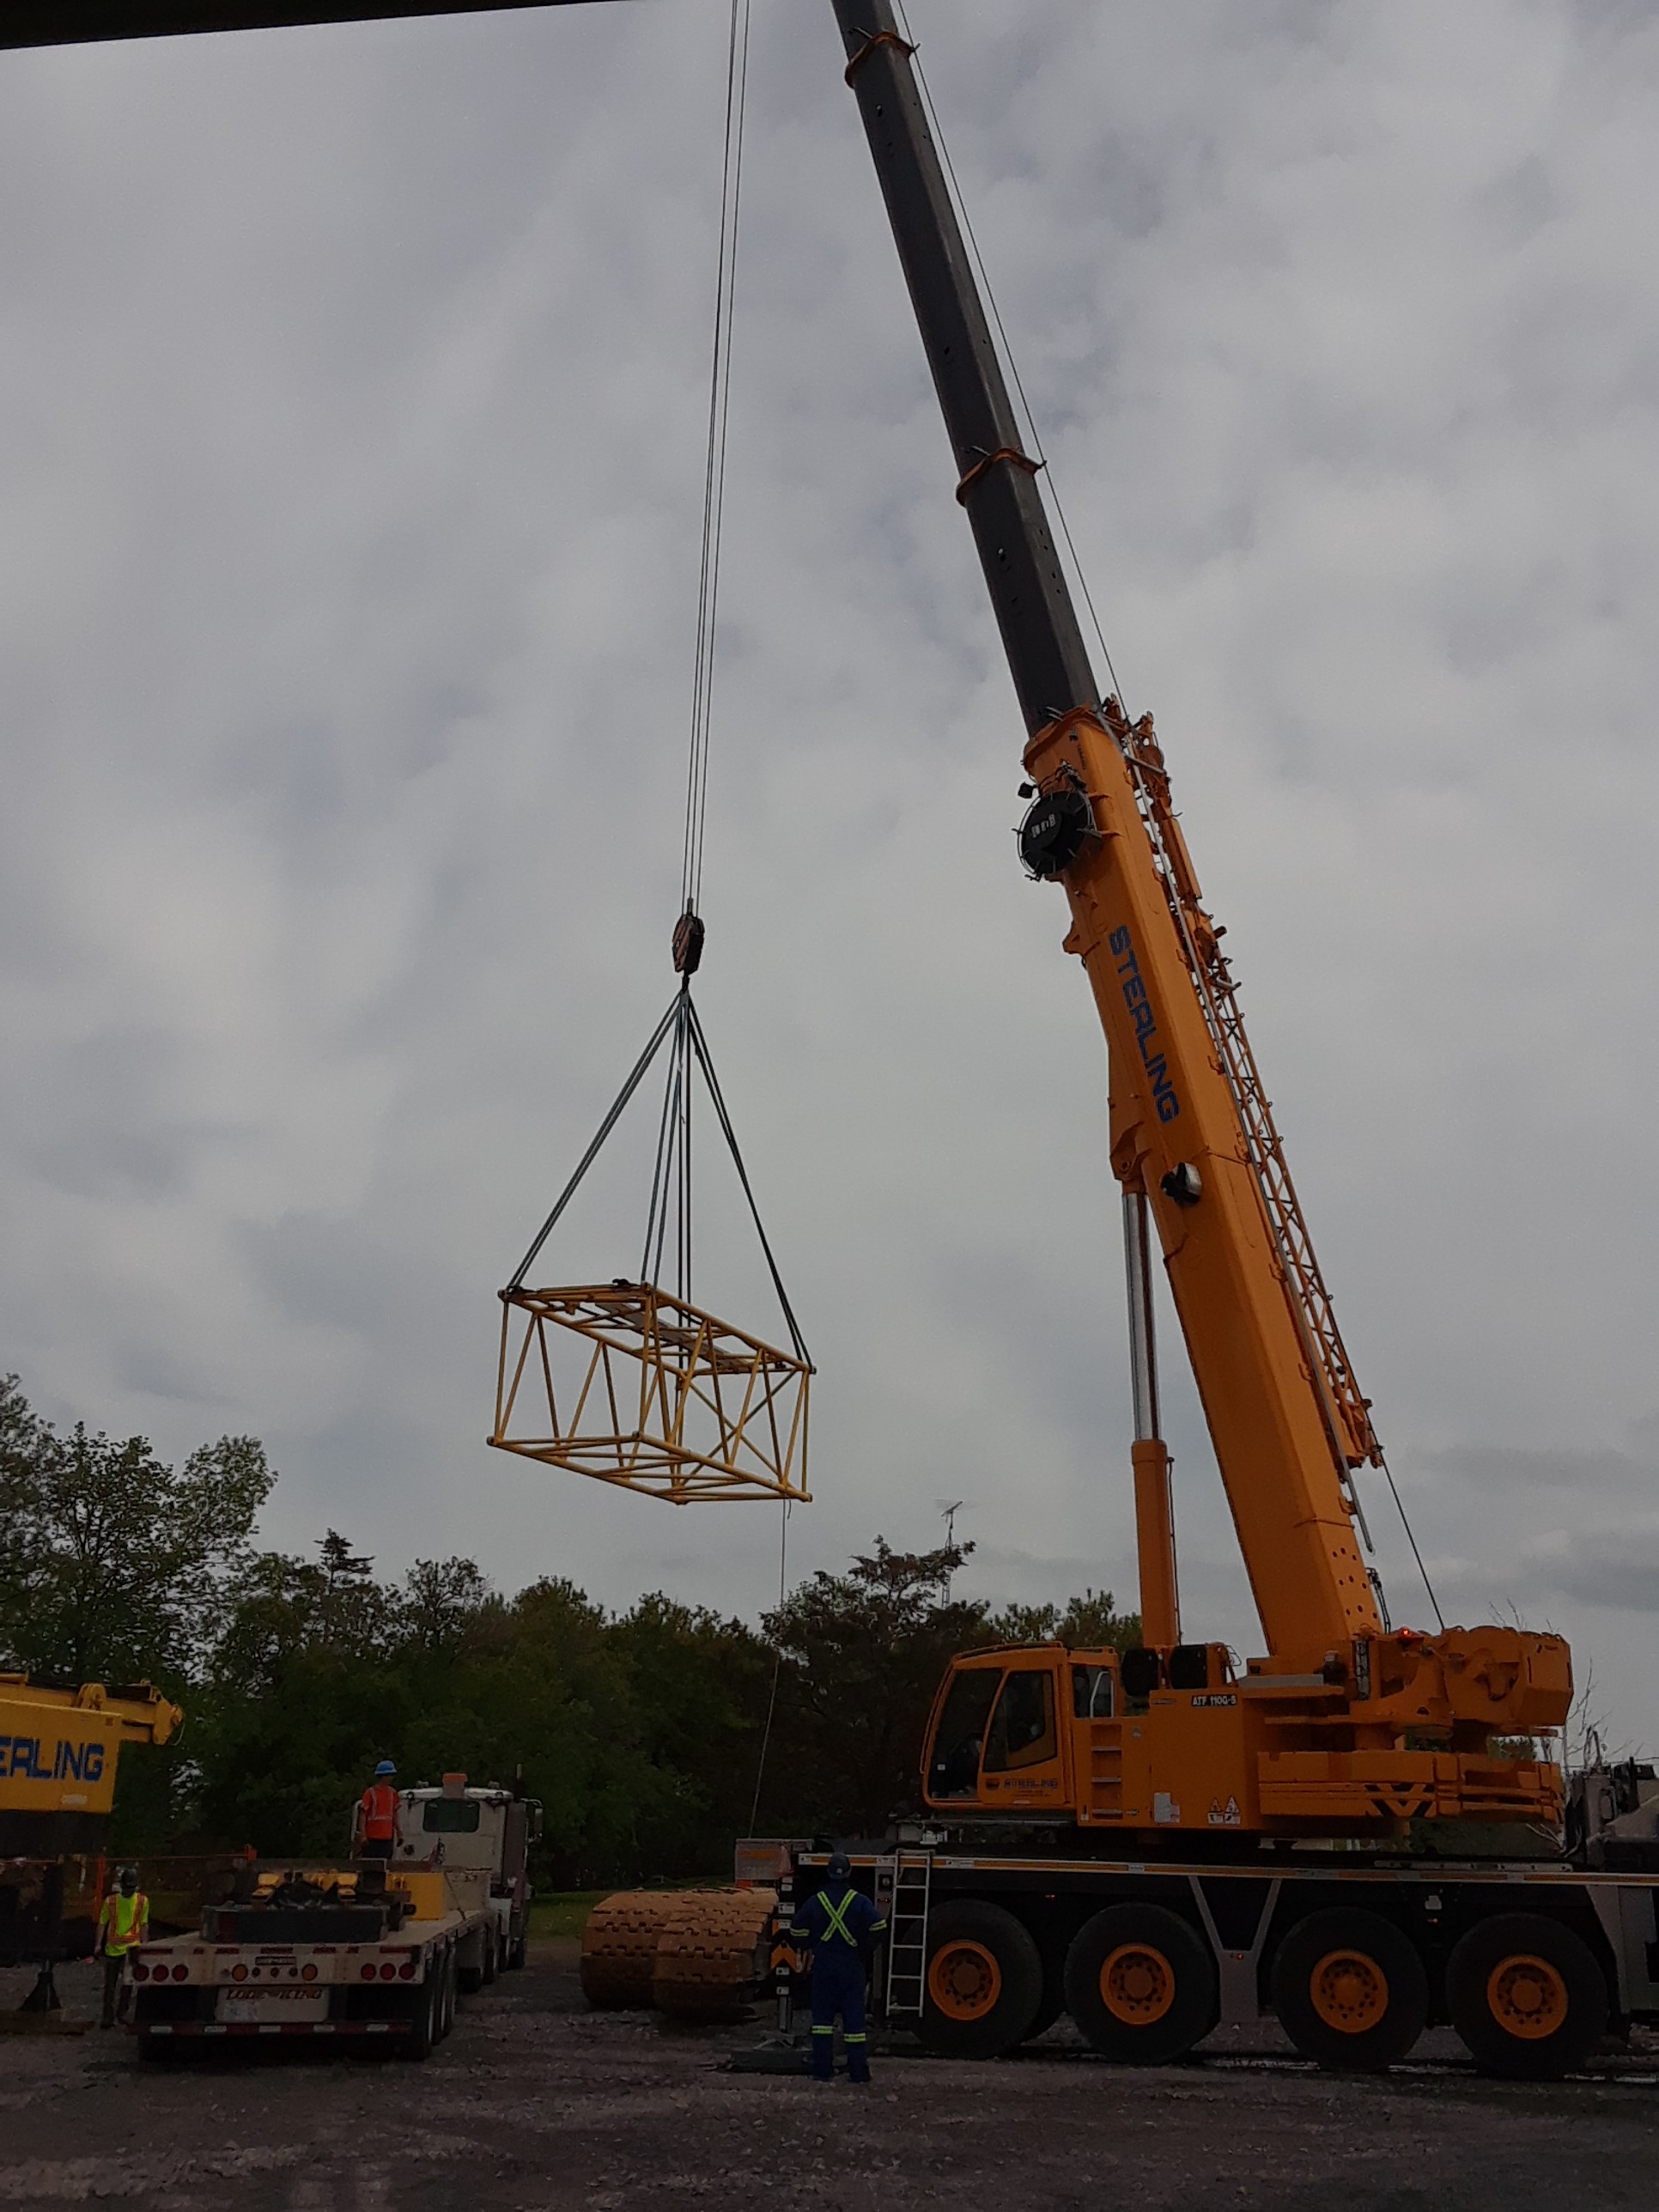 Unloading the new 200 ton crane